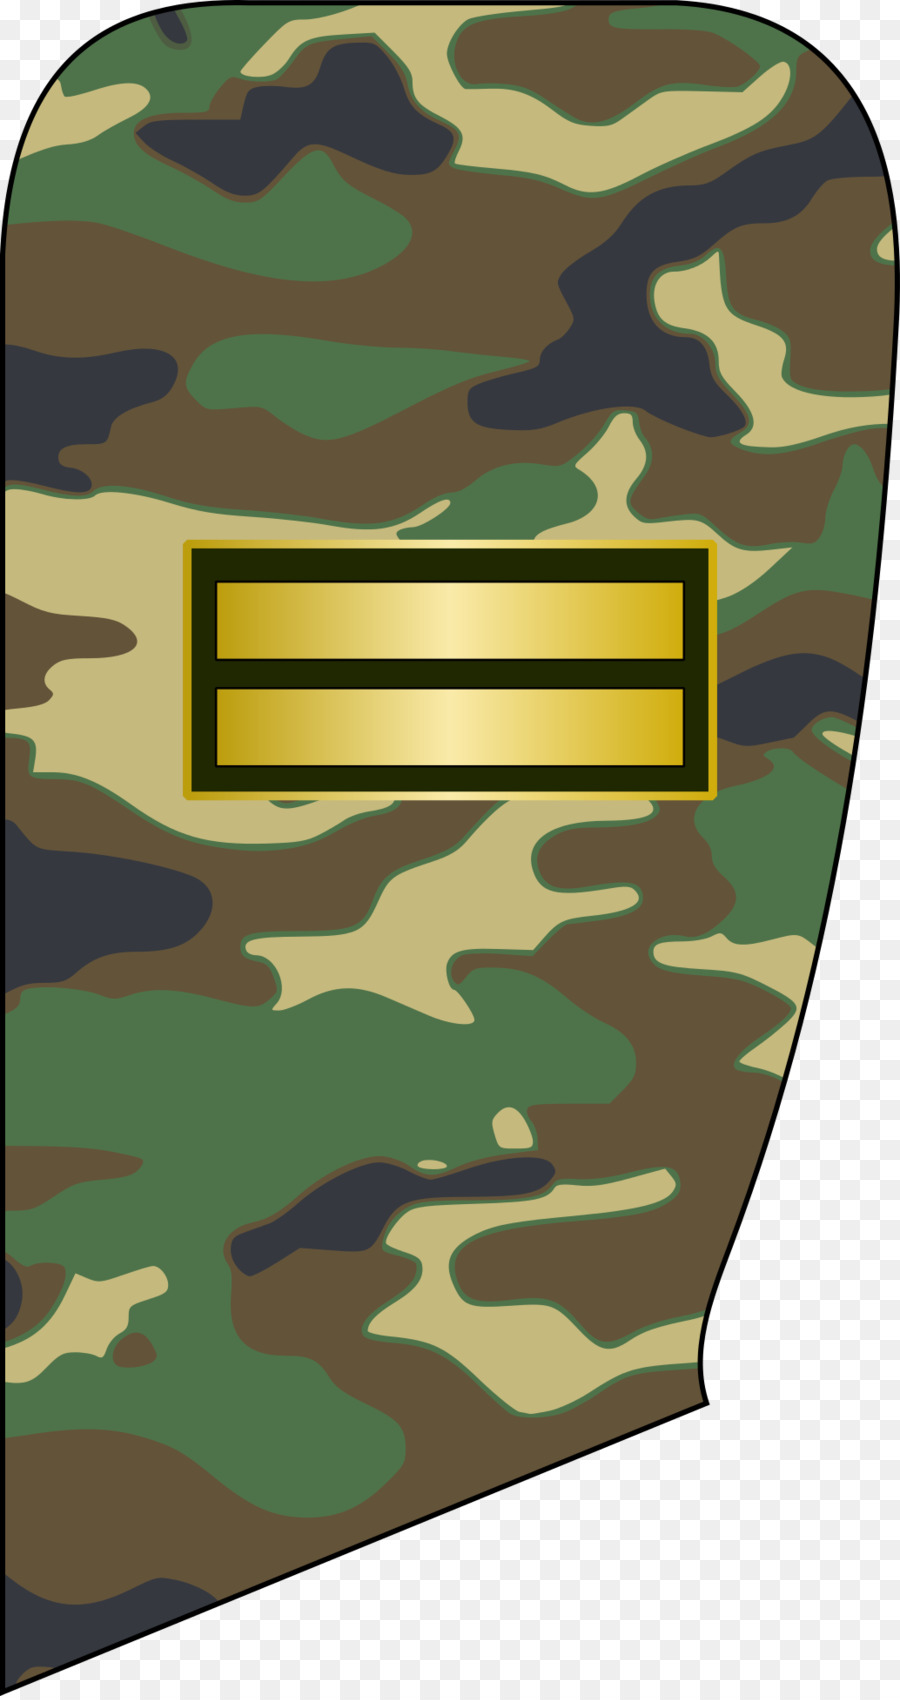 military camouflage desktop wallpaper soldier iphone 6 - military